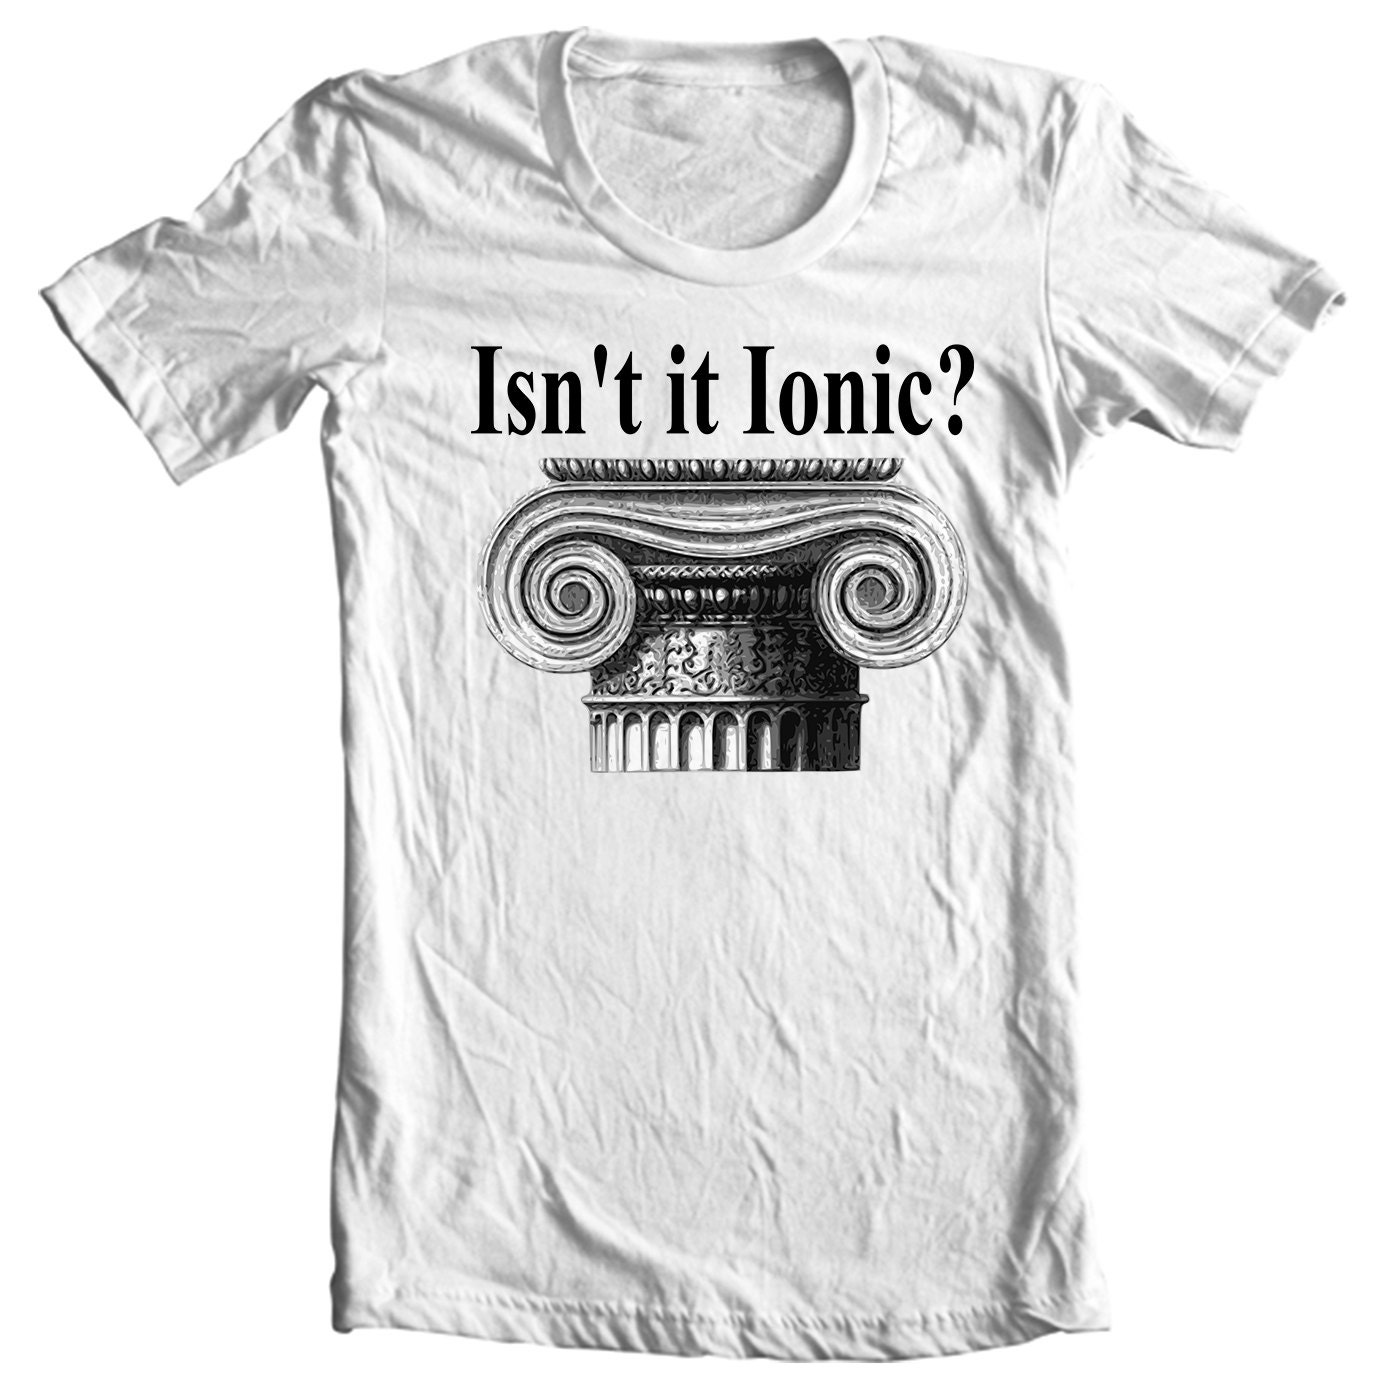 Isn't It Ionic? Classical Architecture T-shirt